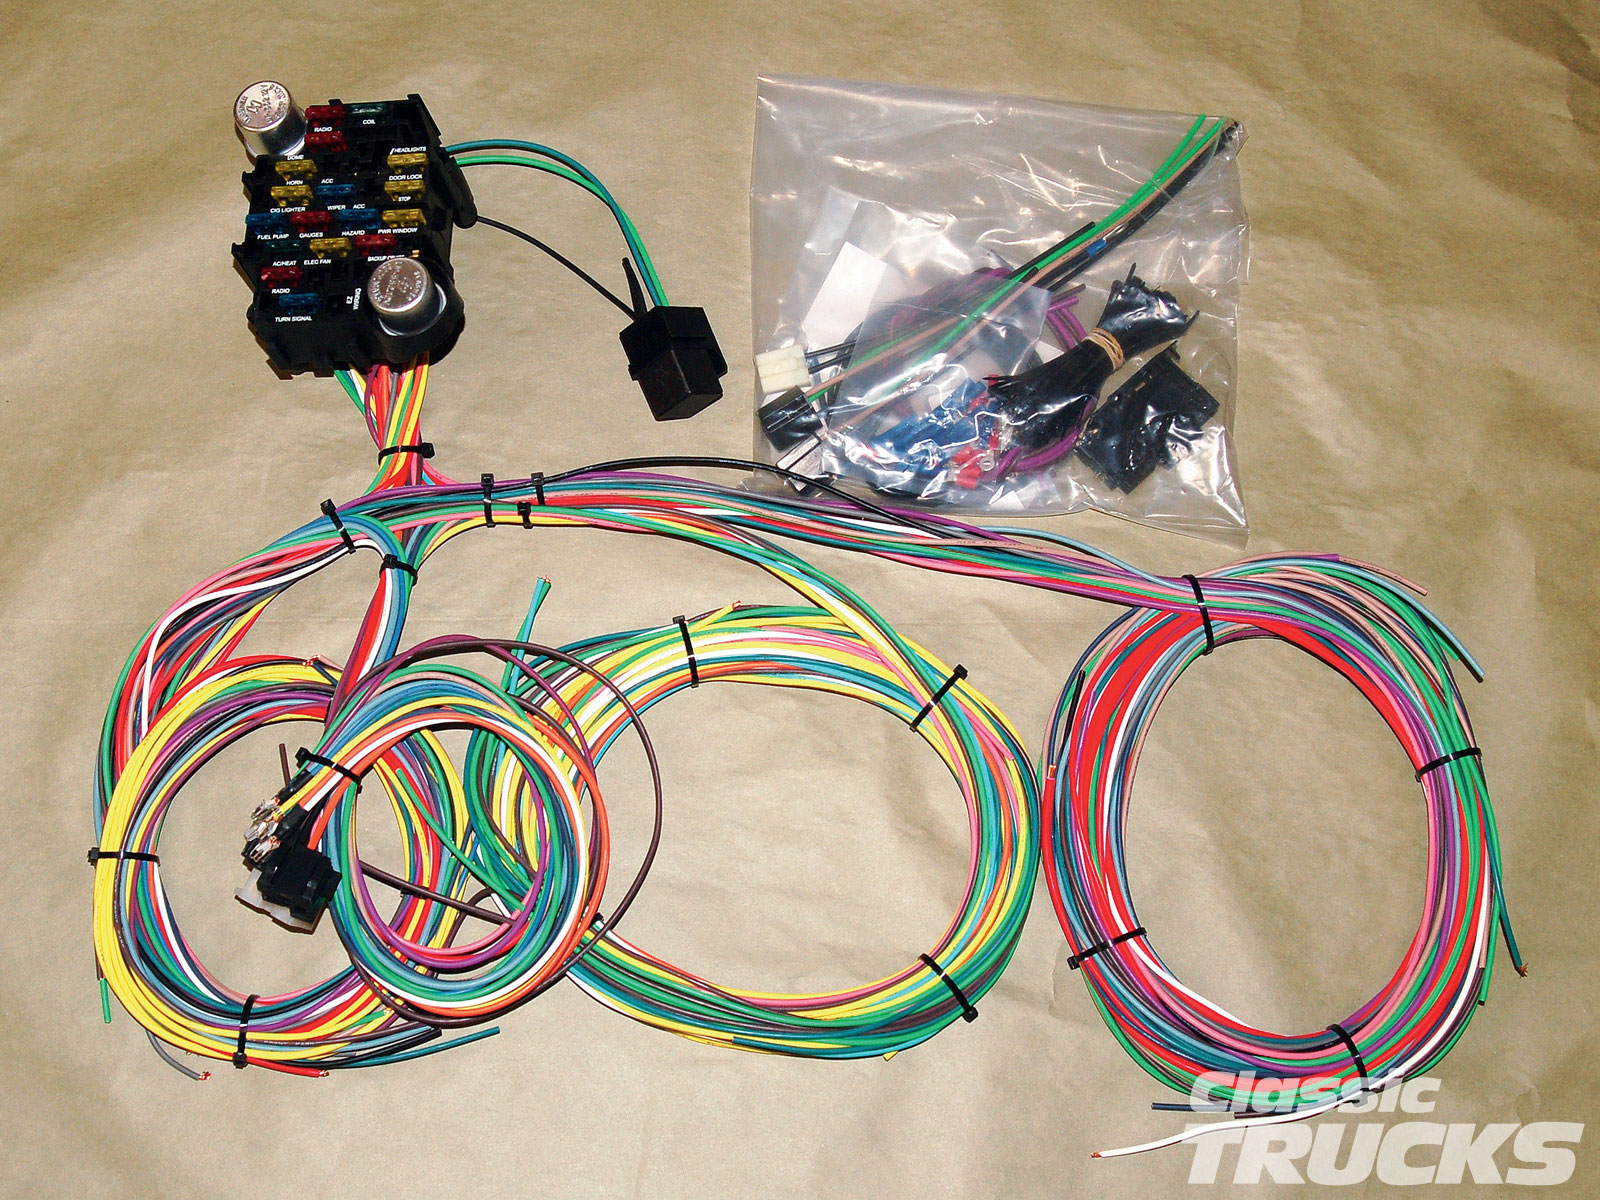 1010clt 02 o aftermarket wiring harness install kit?resize=640%2C480 how much does a wire harness cost to replace hobbiesxstyle how much does it cost to replace a wiring harness at beritabola.co